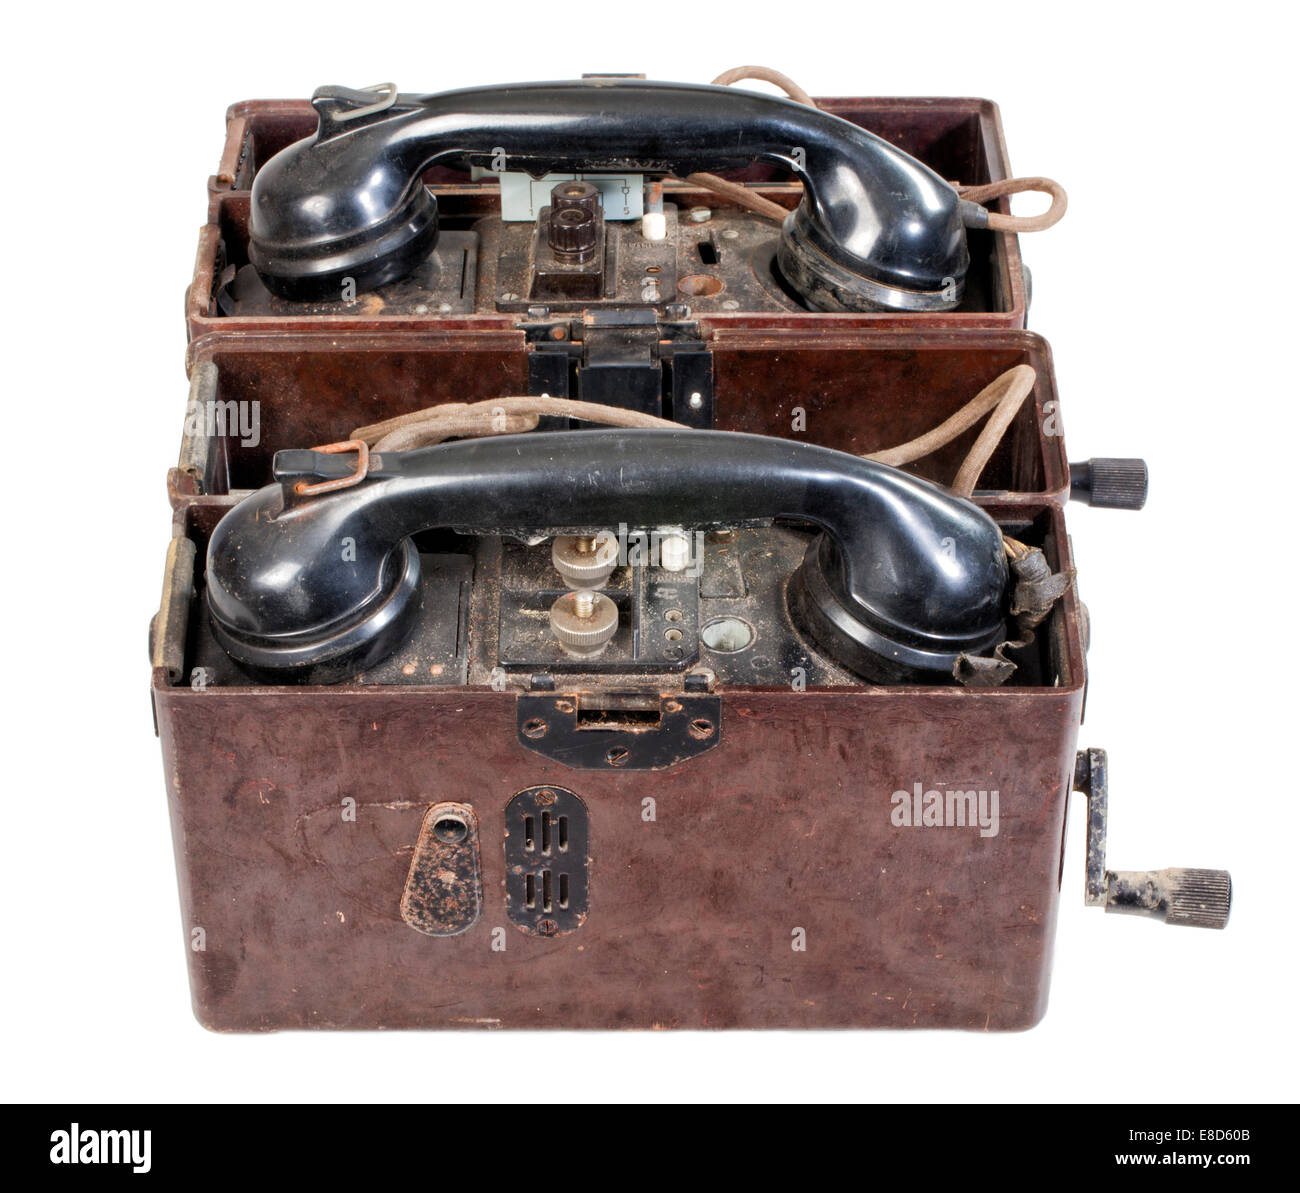 Field telephone, German Wehrmacht, World War II - Stock Image